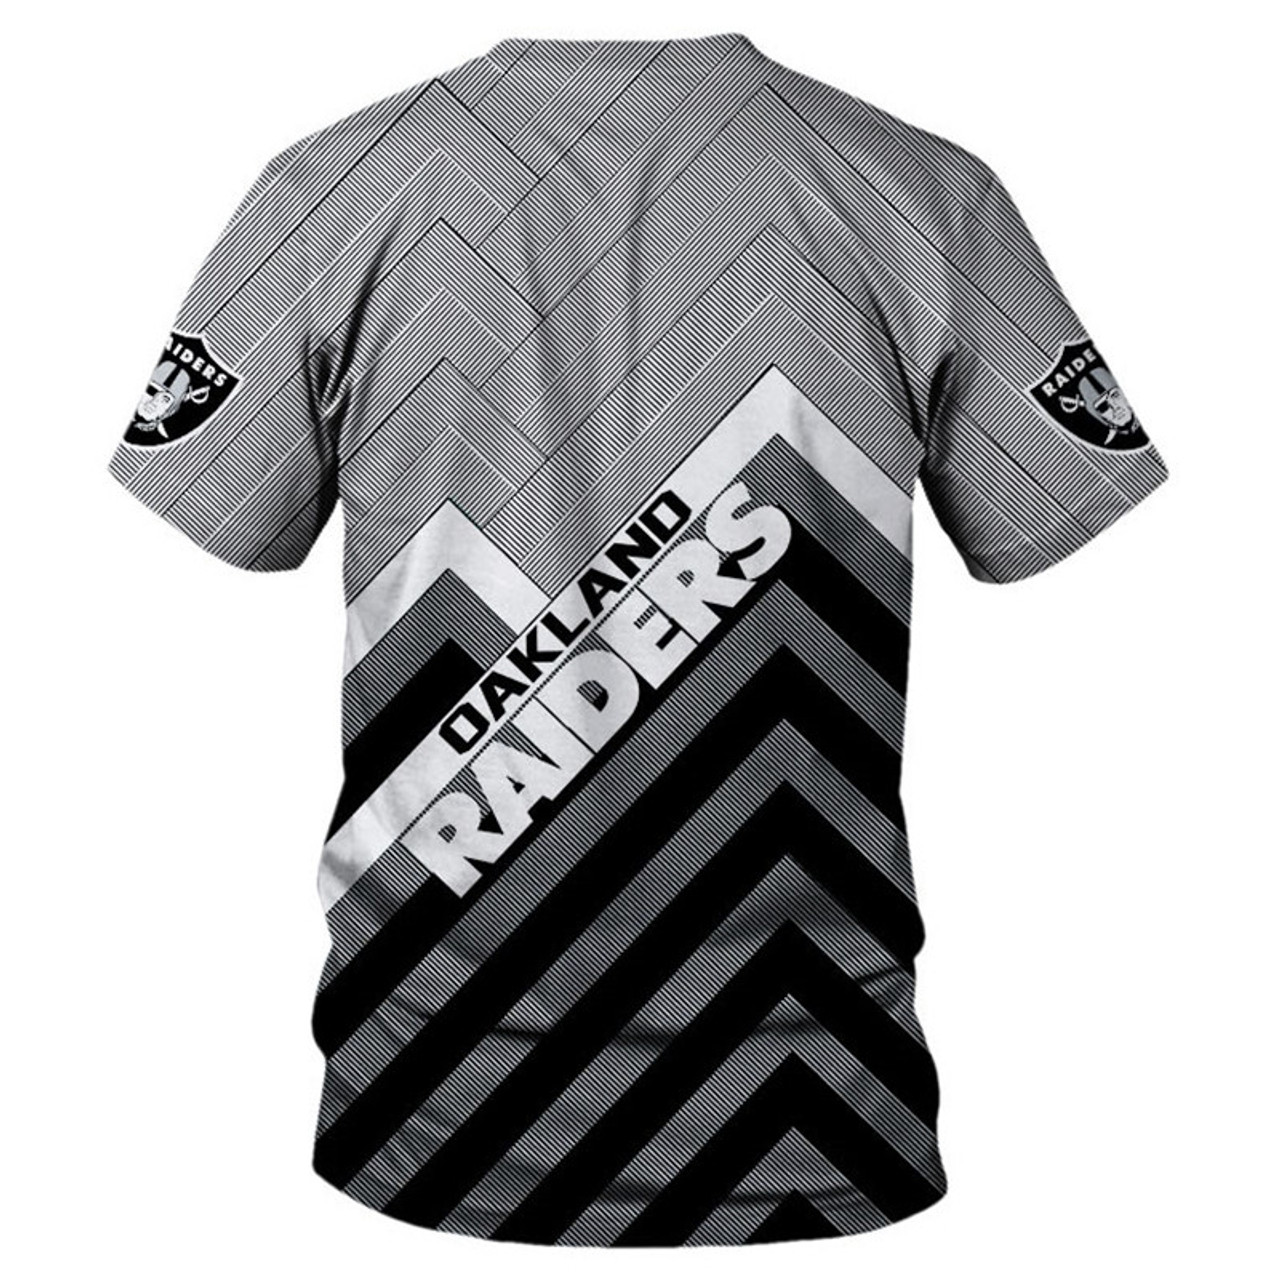 **(OFFICIAL-N.F.L.OAKLAND-RAIDERS-TEAM-TEES/NICE-3D-CUSTOM-RAIDERS-LOGOS & OFFICIAL-RAIDERS-CLASSIC-TEAM-COLORS/NICE-3D-DETAILED-GRAPHIC-PRINTED-DOUBLE-SIDED/ALL-OVER-ENTIRE-TEE-SHIRT-PRINTED-DESIGN/TRENDY-PREMIUM-N.F.L.OAKLAND-RAIDERS-TEES)**